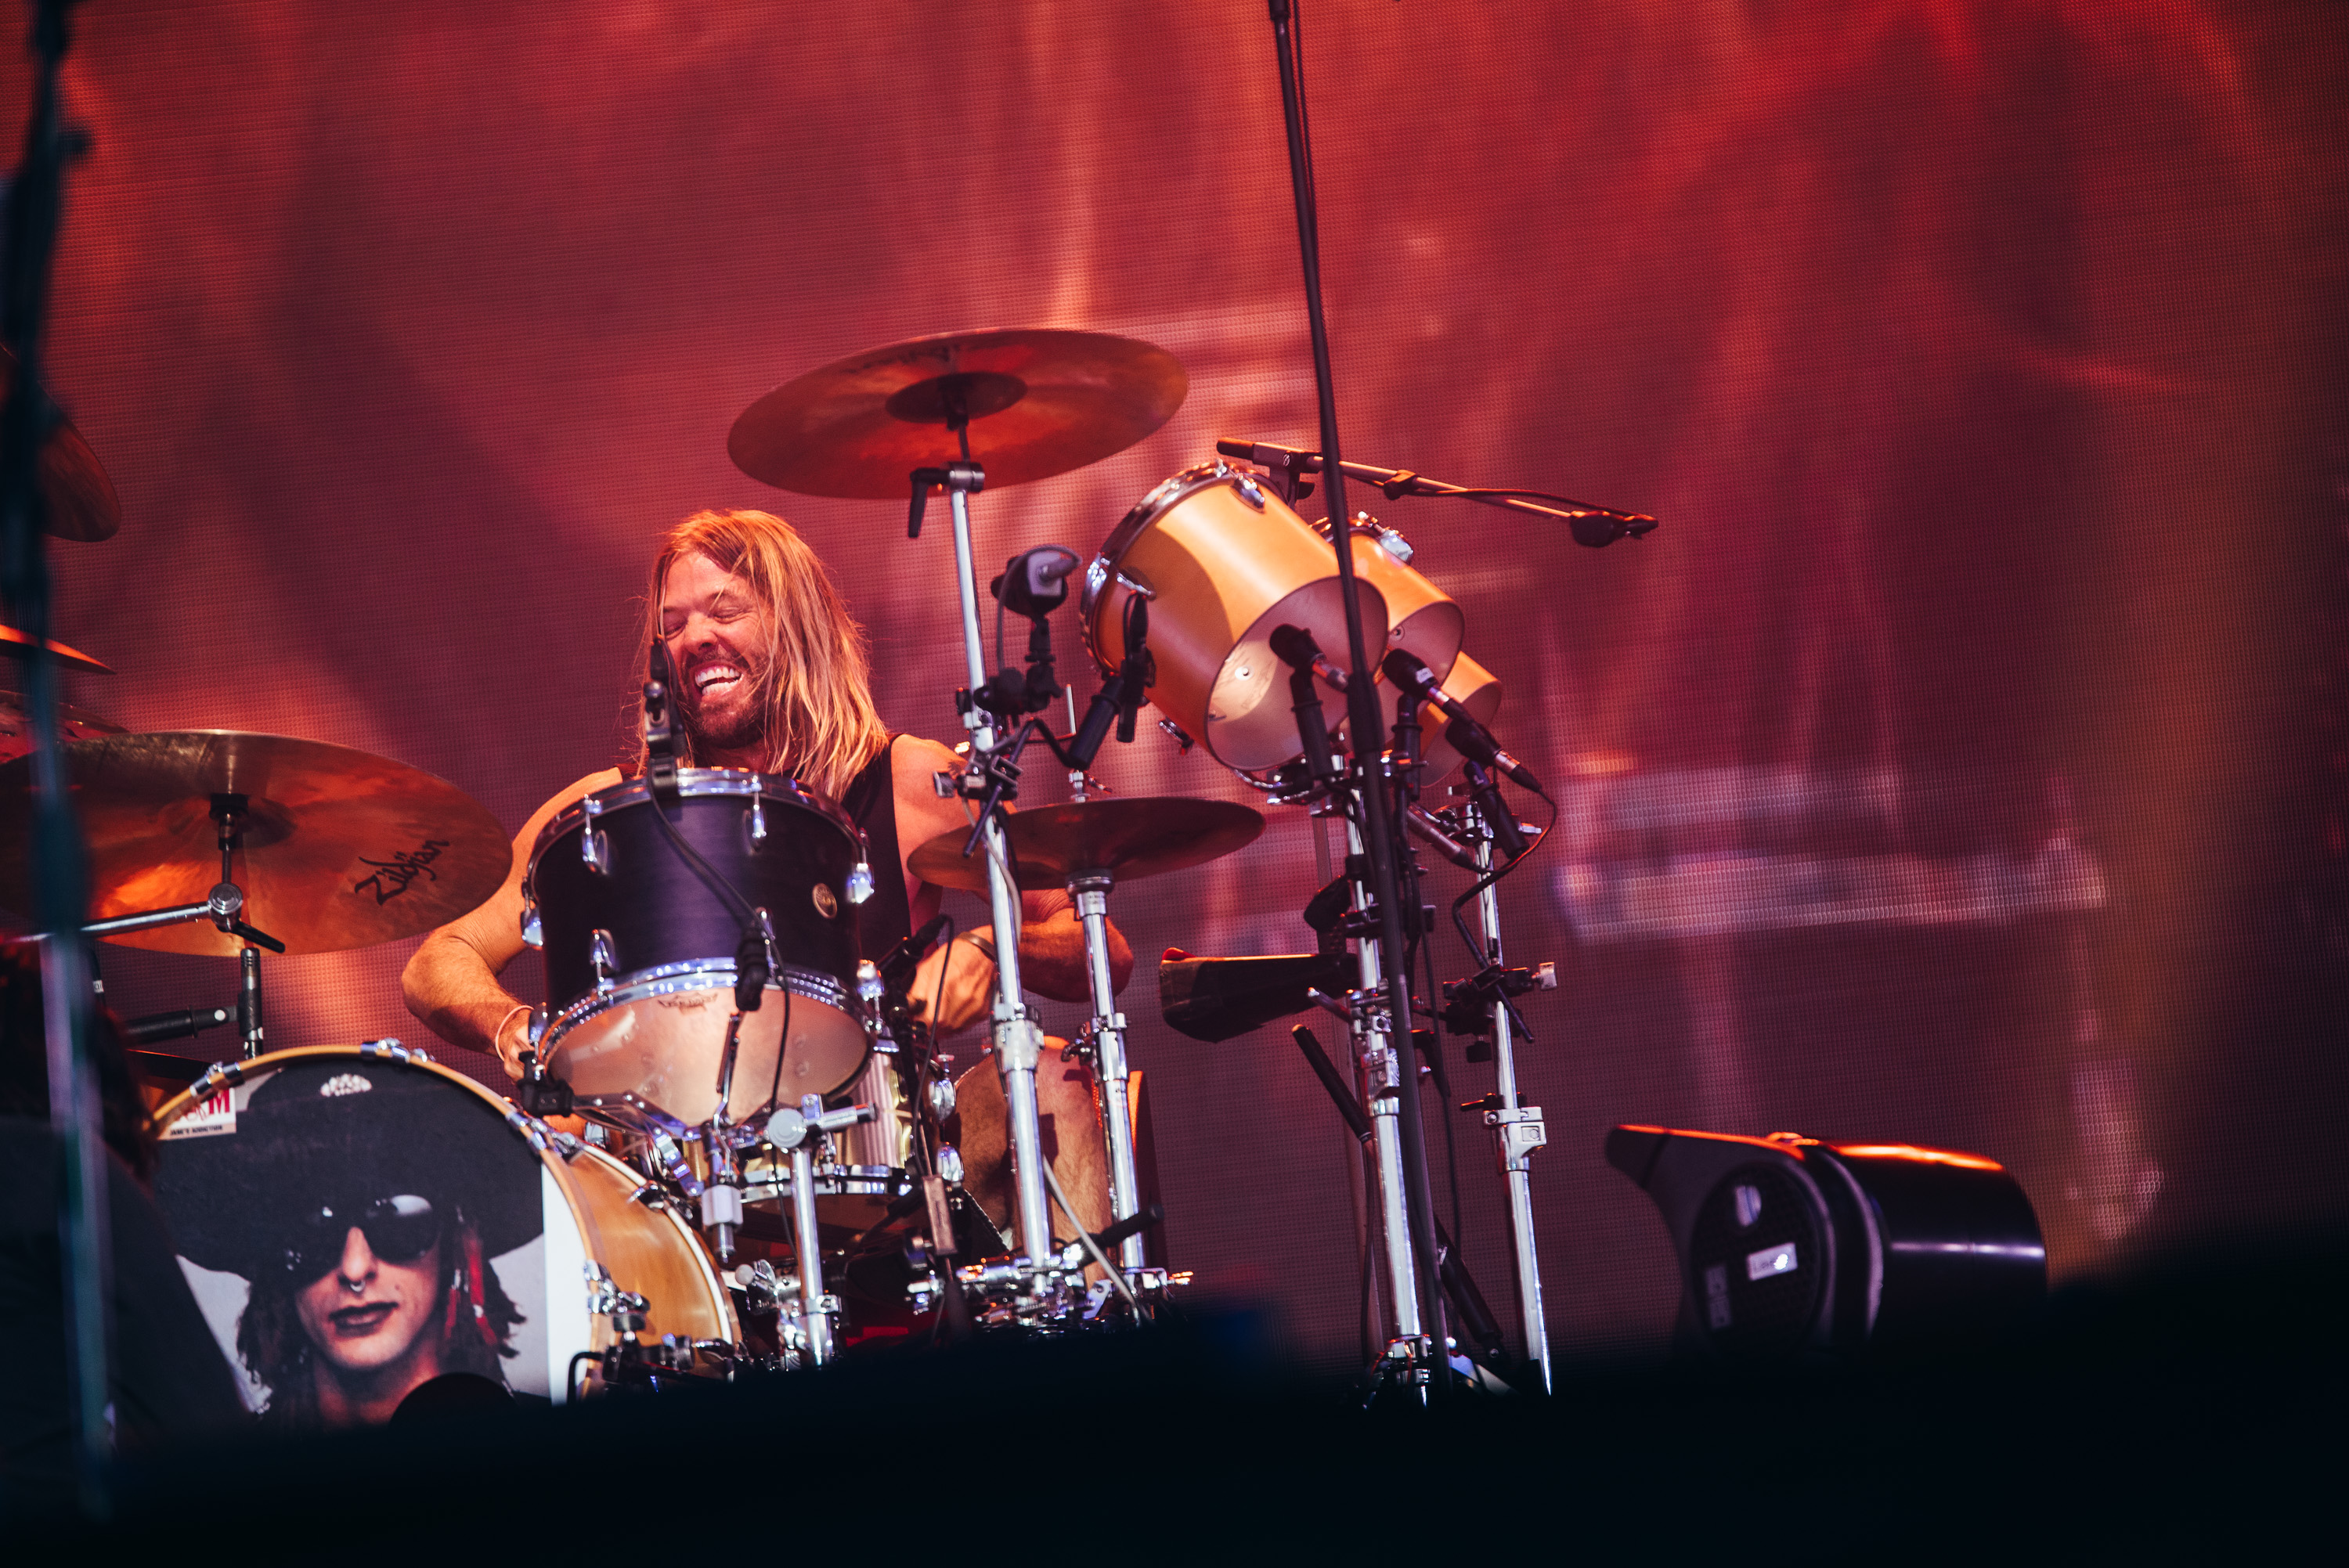 Taylor Hawkins Foo Fighters drummer at Glasgow Summer Sessions by Ryan Johnston